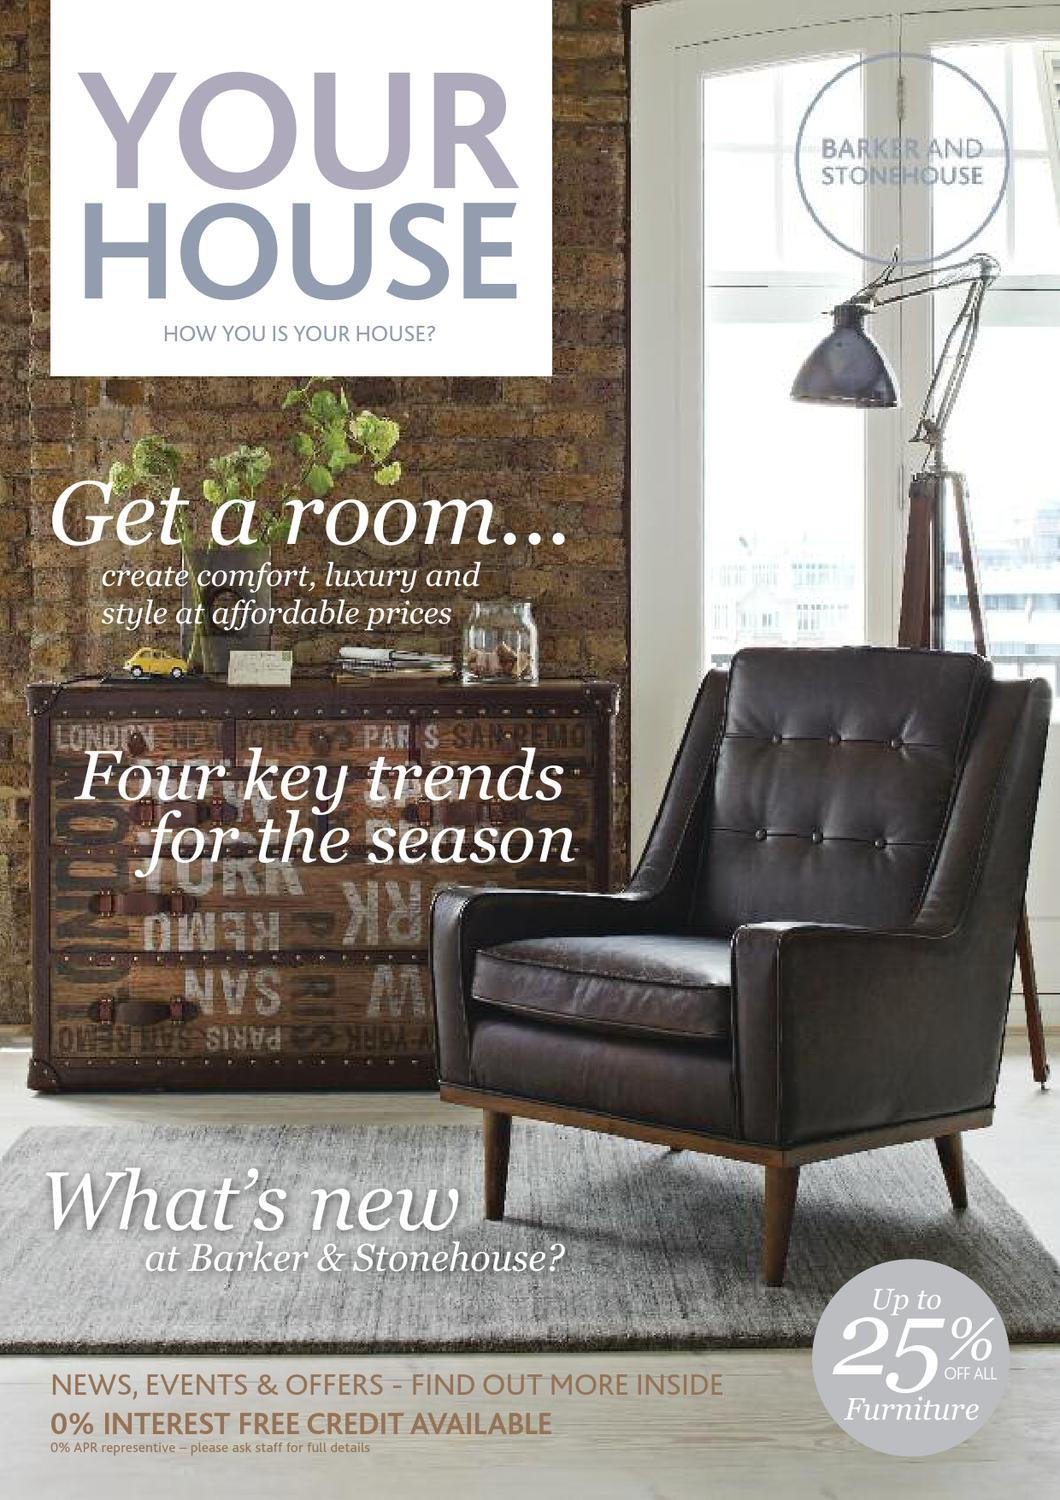 Stressless Furniture Market Harborough Barker And Stonehouse Autumn Brochure By Lewis Lane Issuu